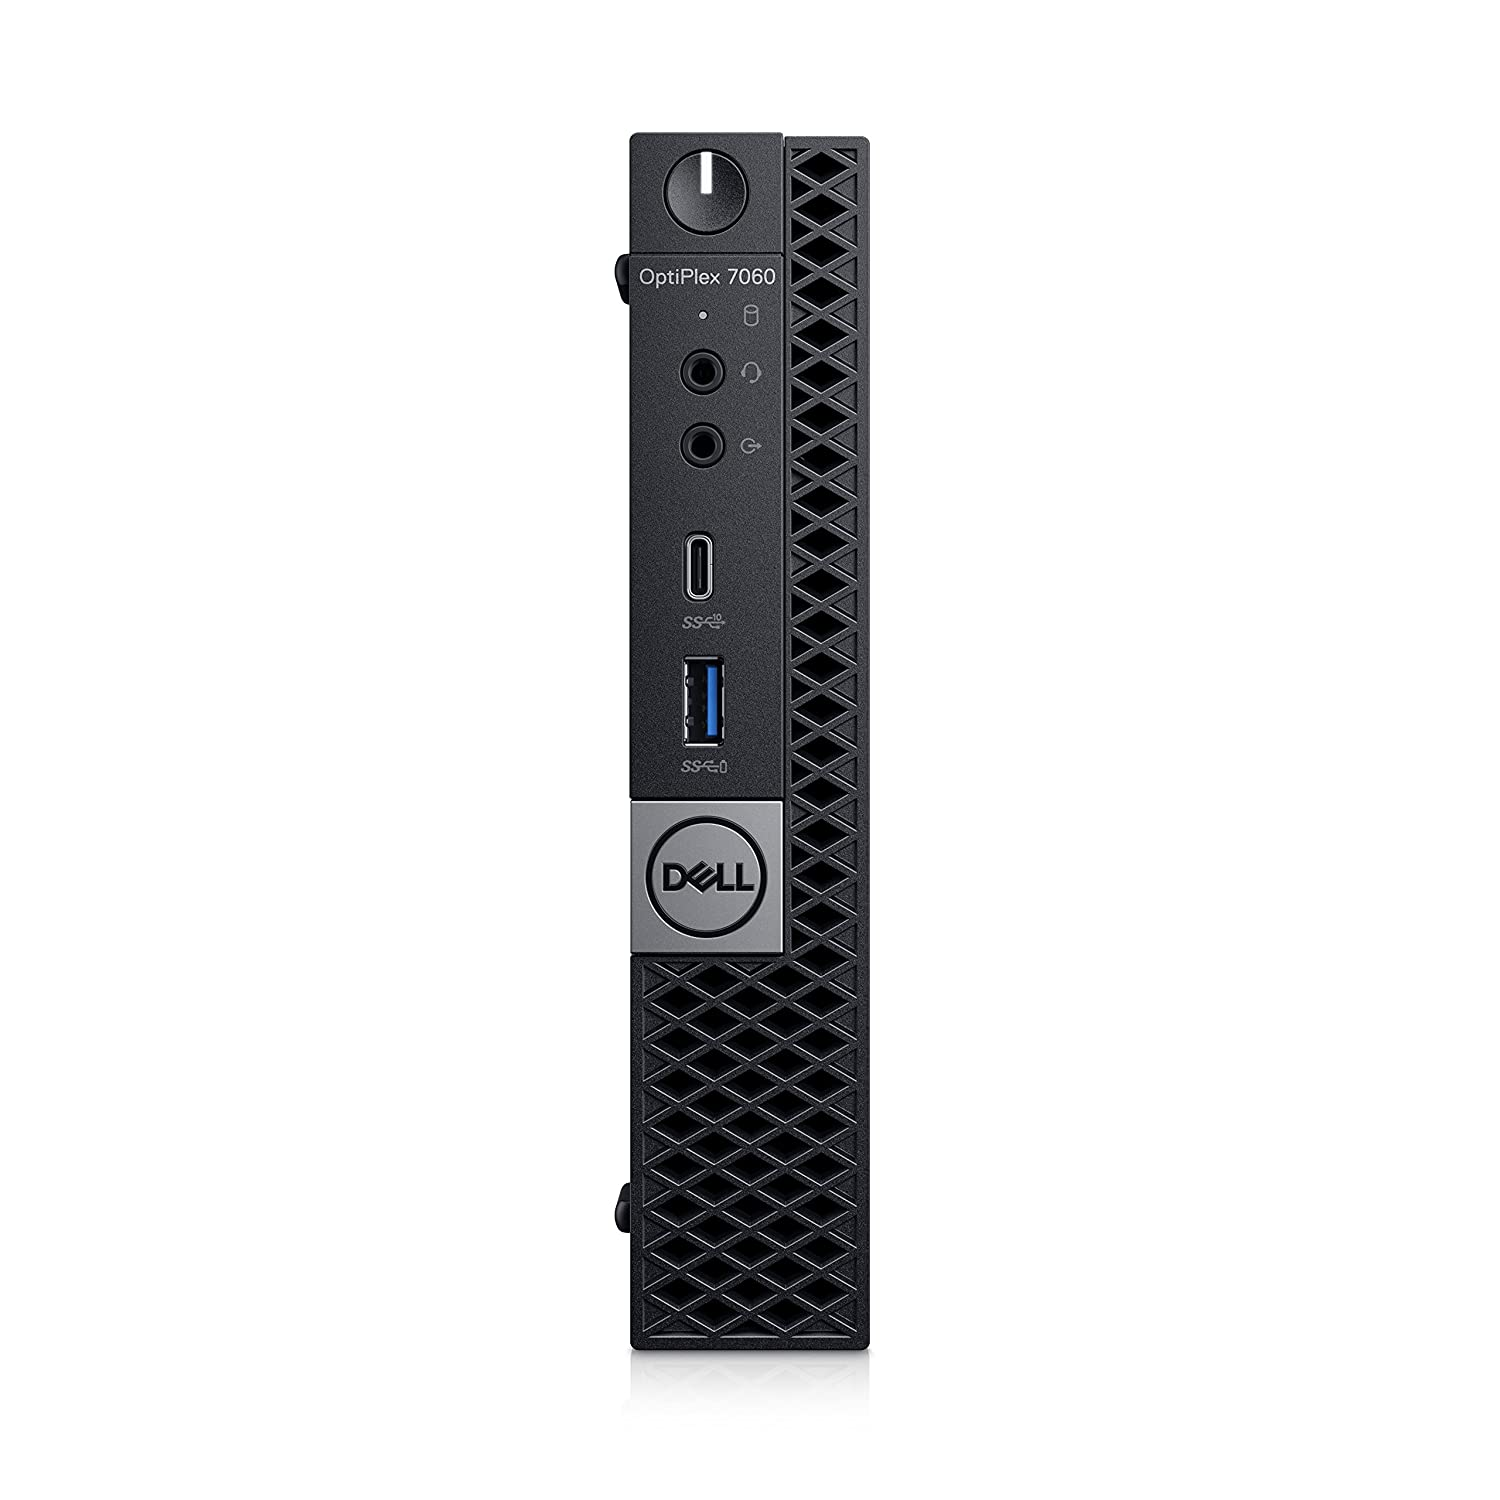 Dell OptiPlex 7060 2,1 GHz 8ª generación de procesadores Intel® Core i5 i5-8500T Negro USFF Mini PC OptiPlex 7060, 2,1 GHz, 8ª generación de procesadores Intel® Core i5, i5-8500T,